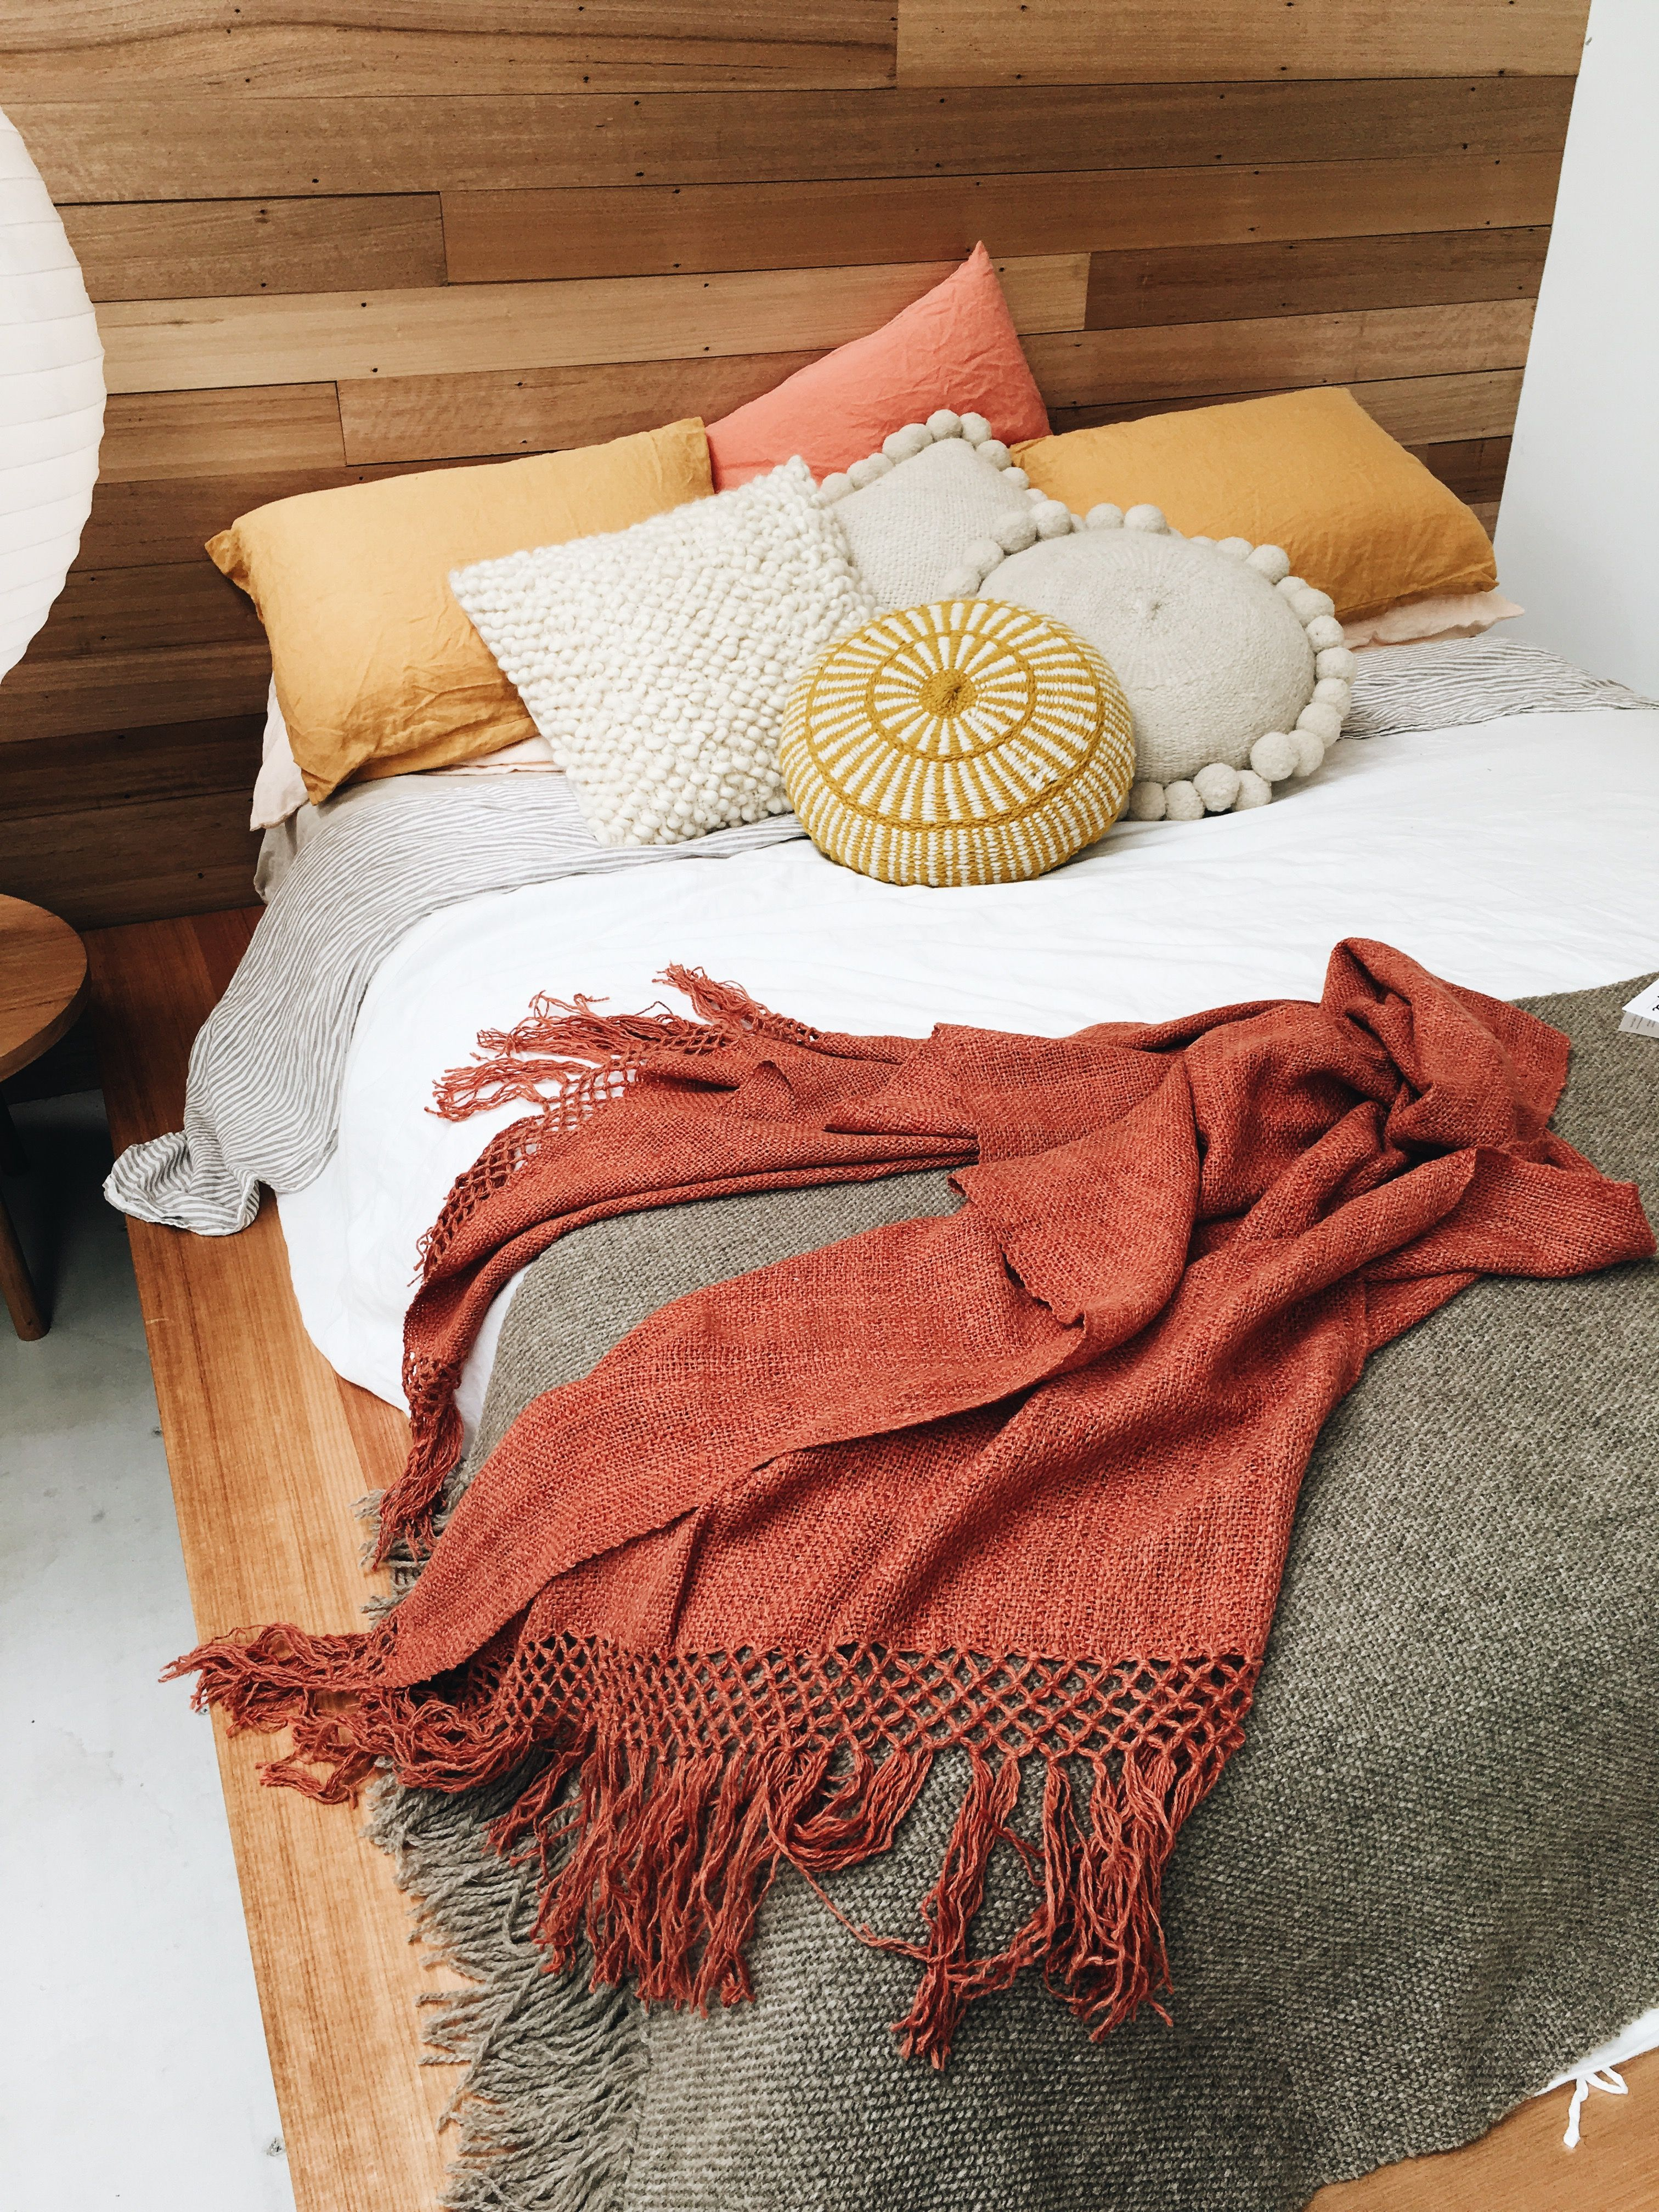 Pampa Throws Cushions Bed Throws Bed Cushions Bed Design